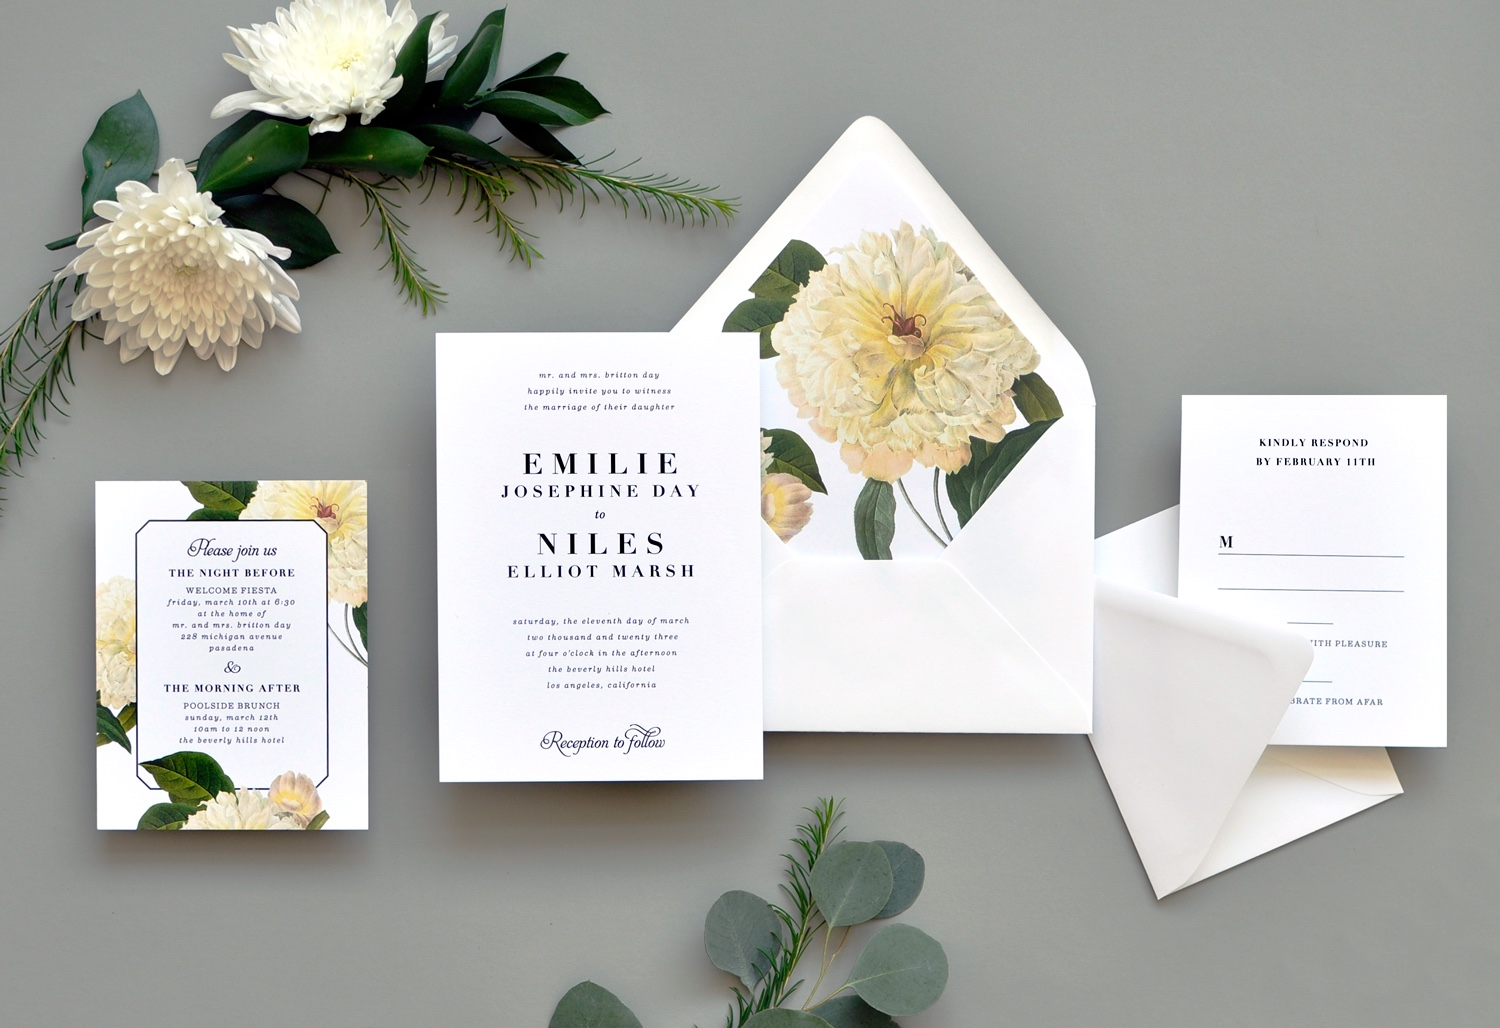 A simple wedding invitation is perfectly paired with a bold floral envelope liner featuring a large mum.